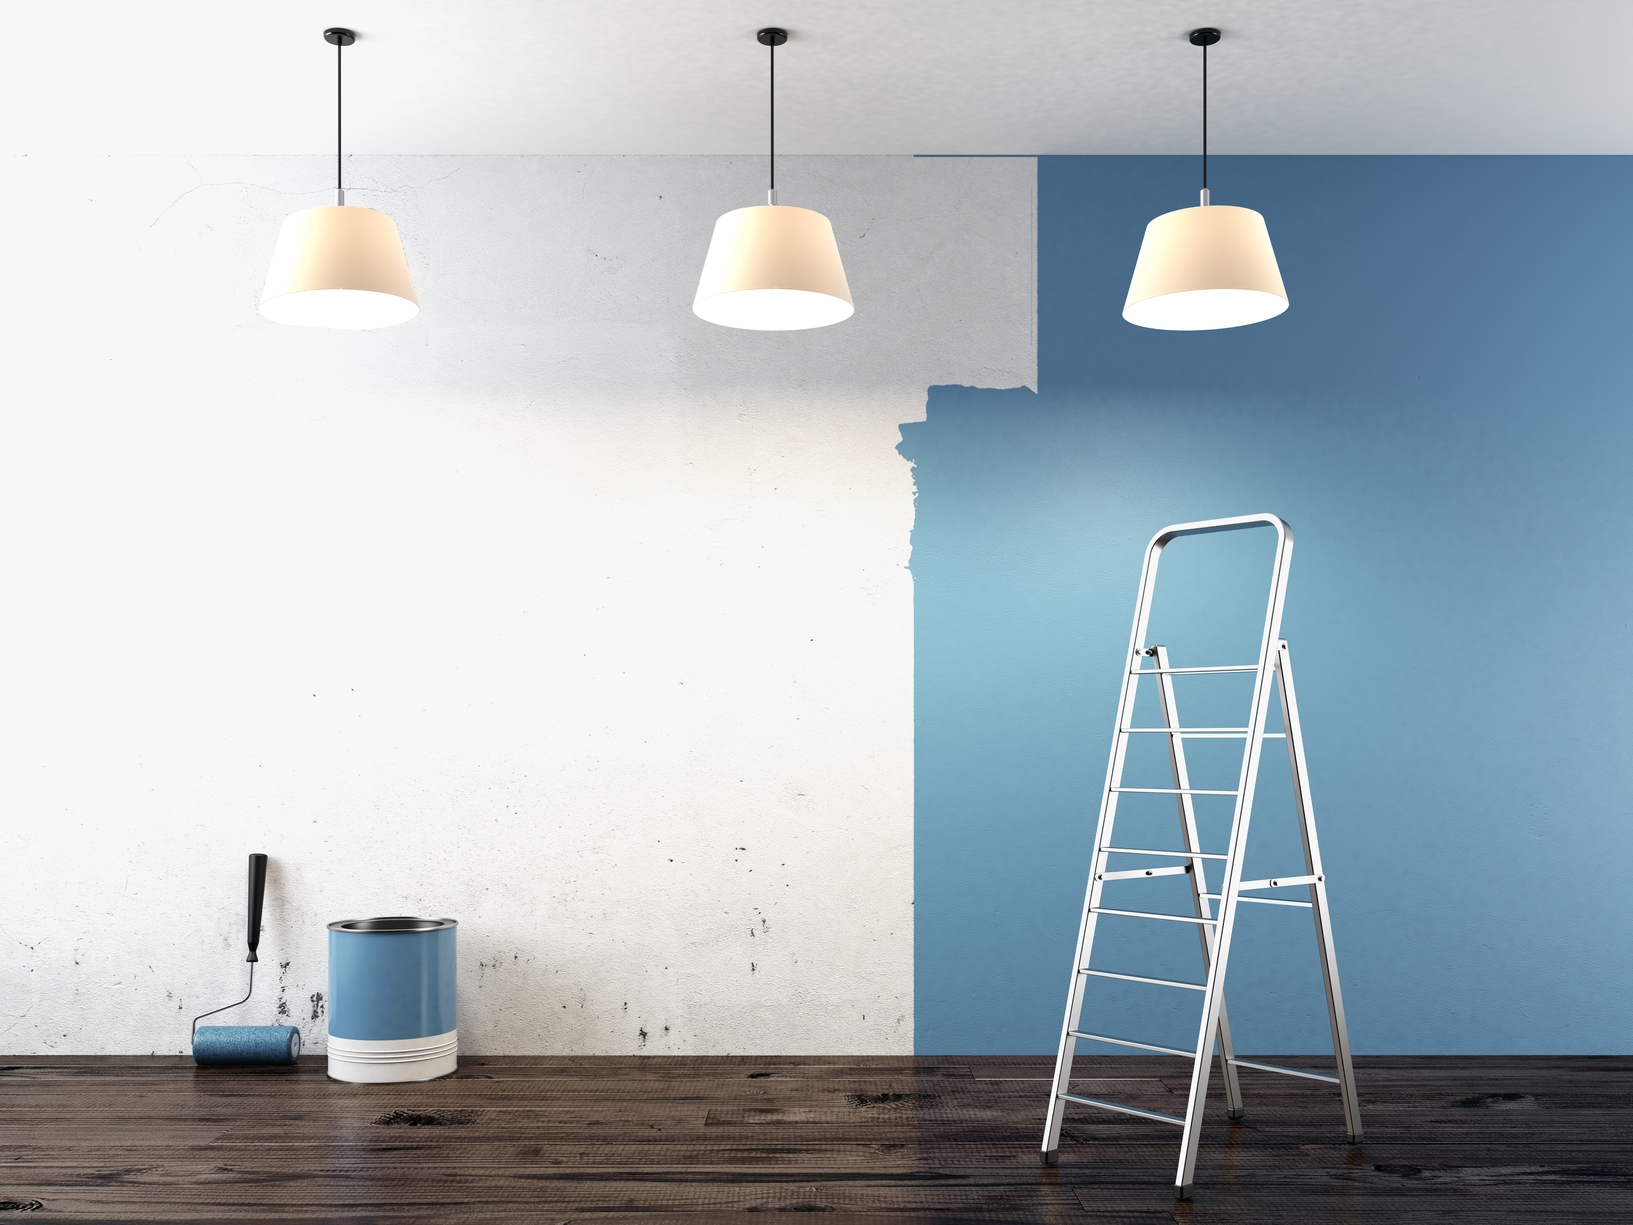 Interior and Exterior Painting and Painting Companies